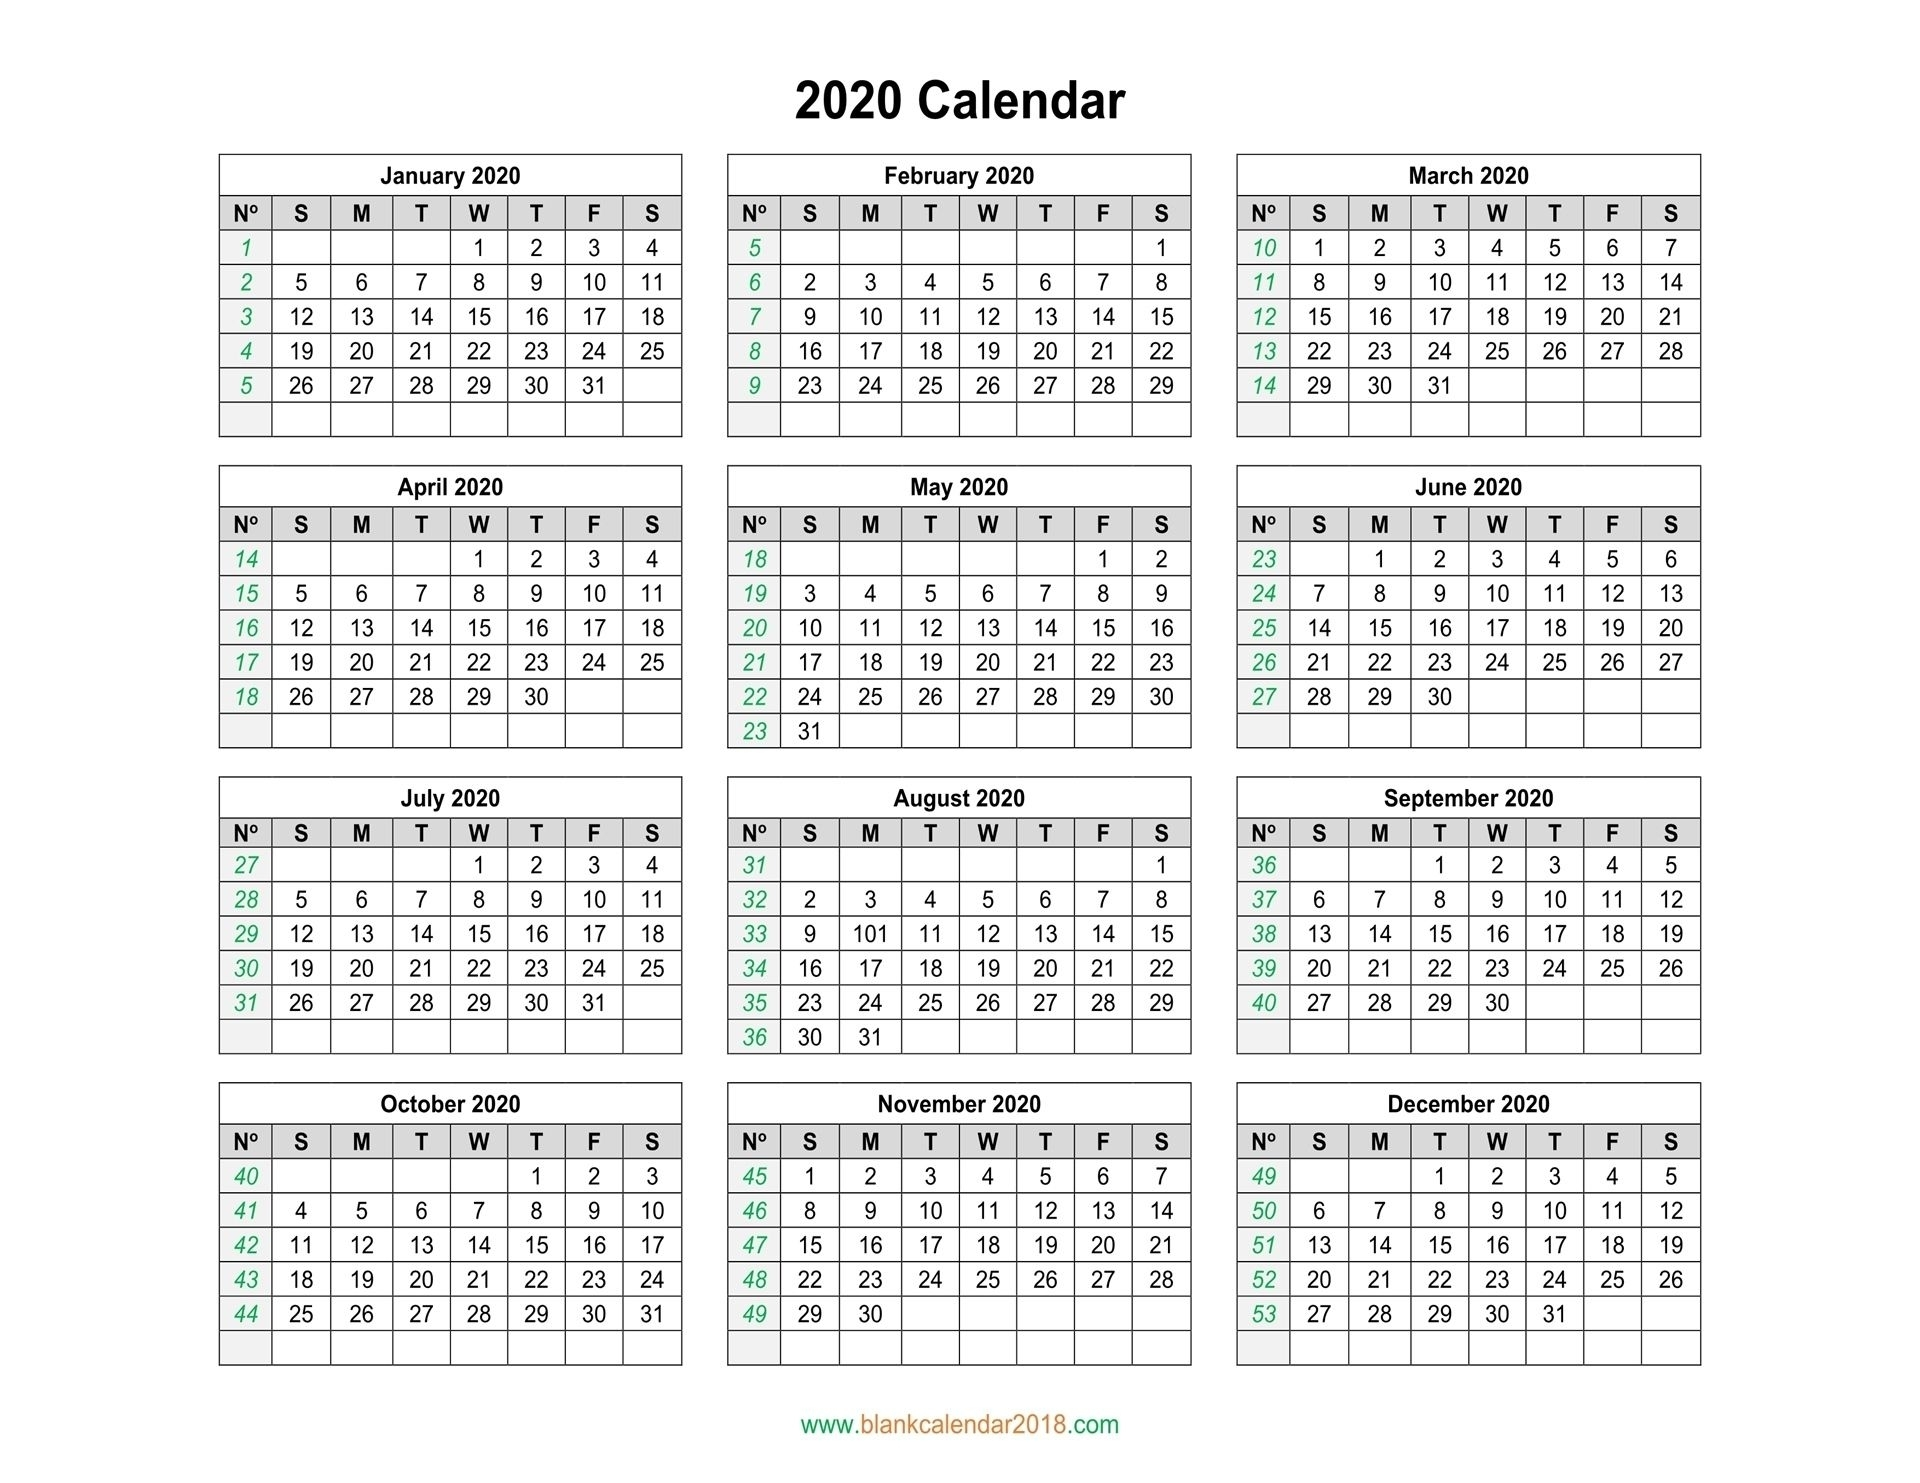 Remarkable Calendar With Days Numbered 2020 In 2020